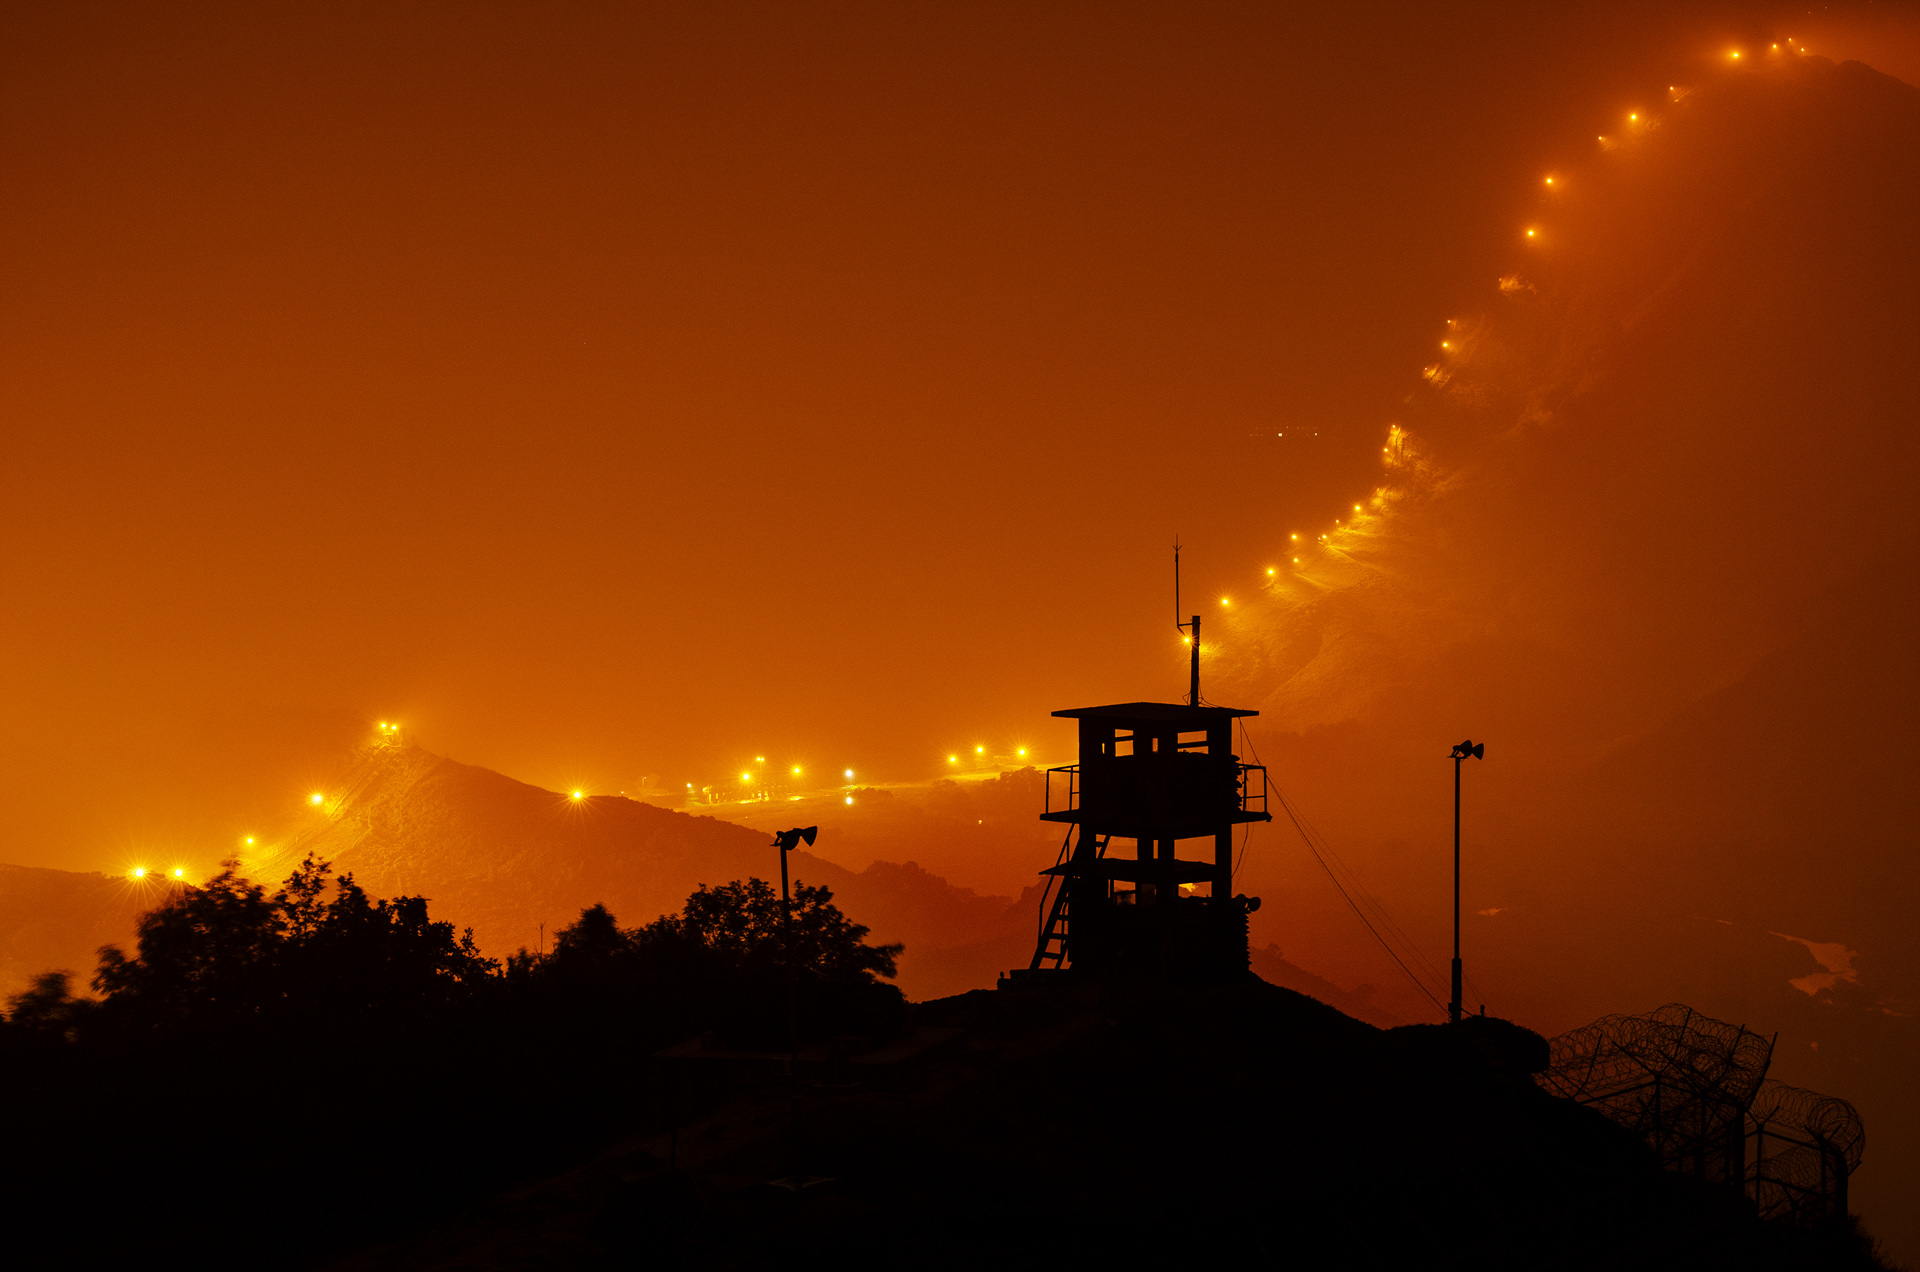 After sunset, countless lamps illuminating 248km of the DMZ fence to prevent enemy infiltration.